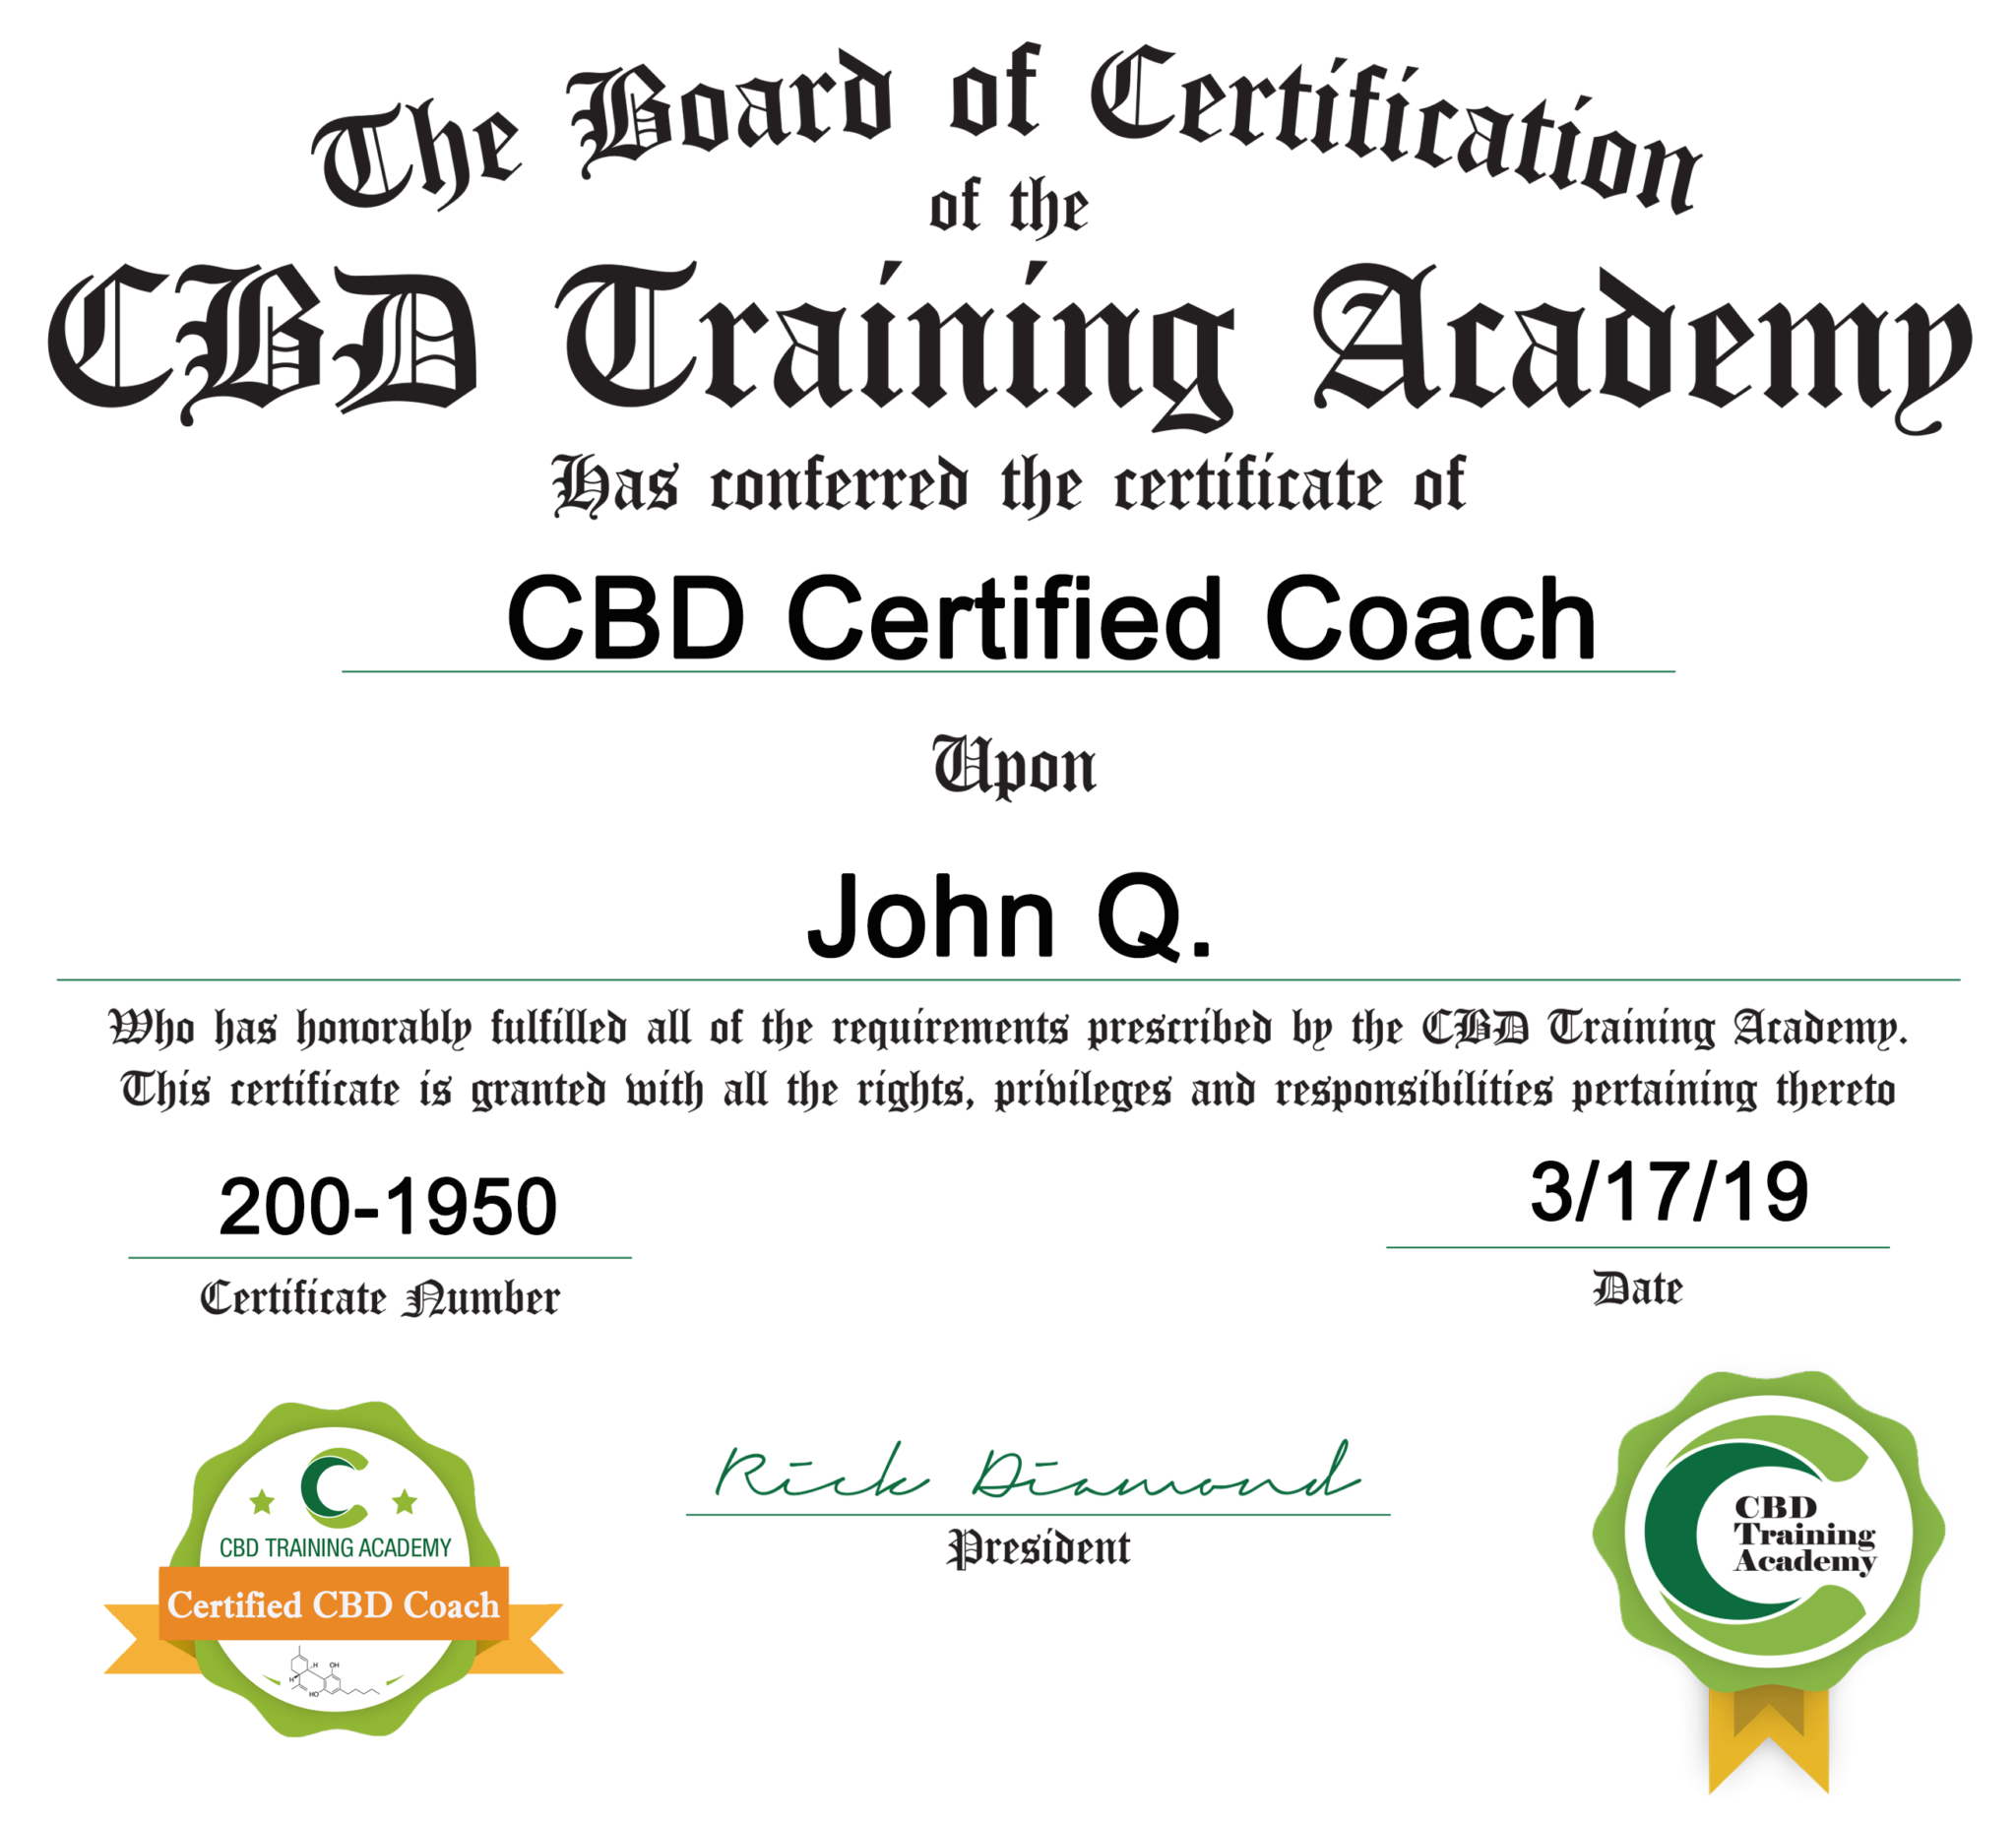 Why Certification? - CBD Training Academy